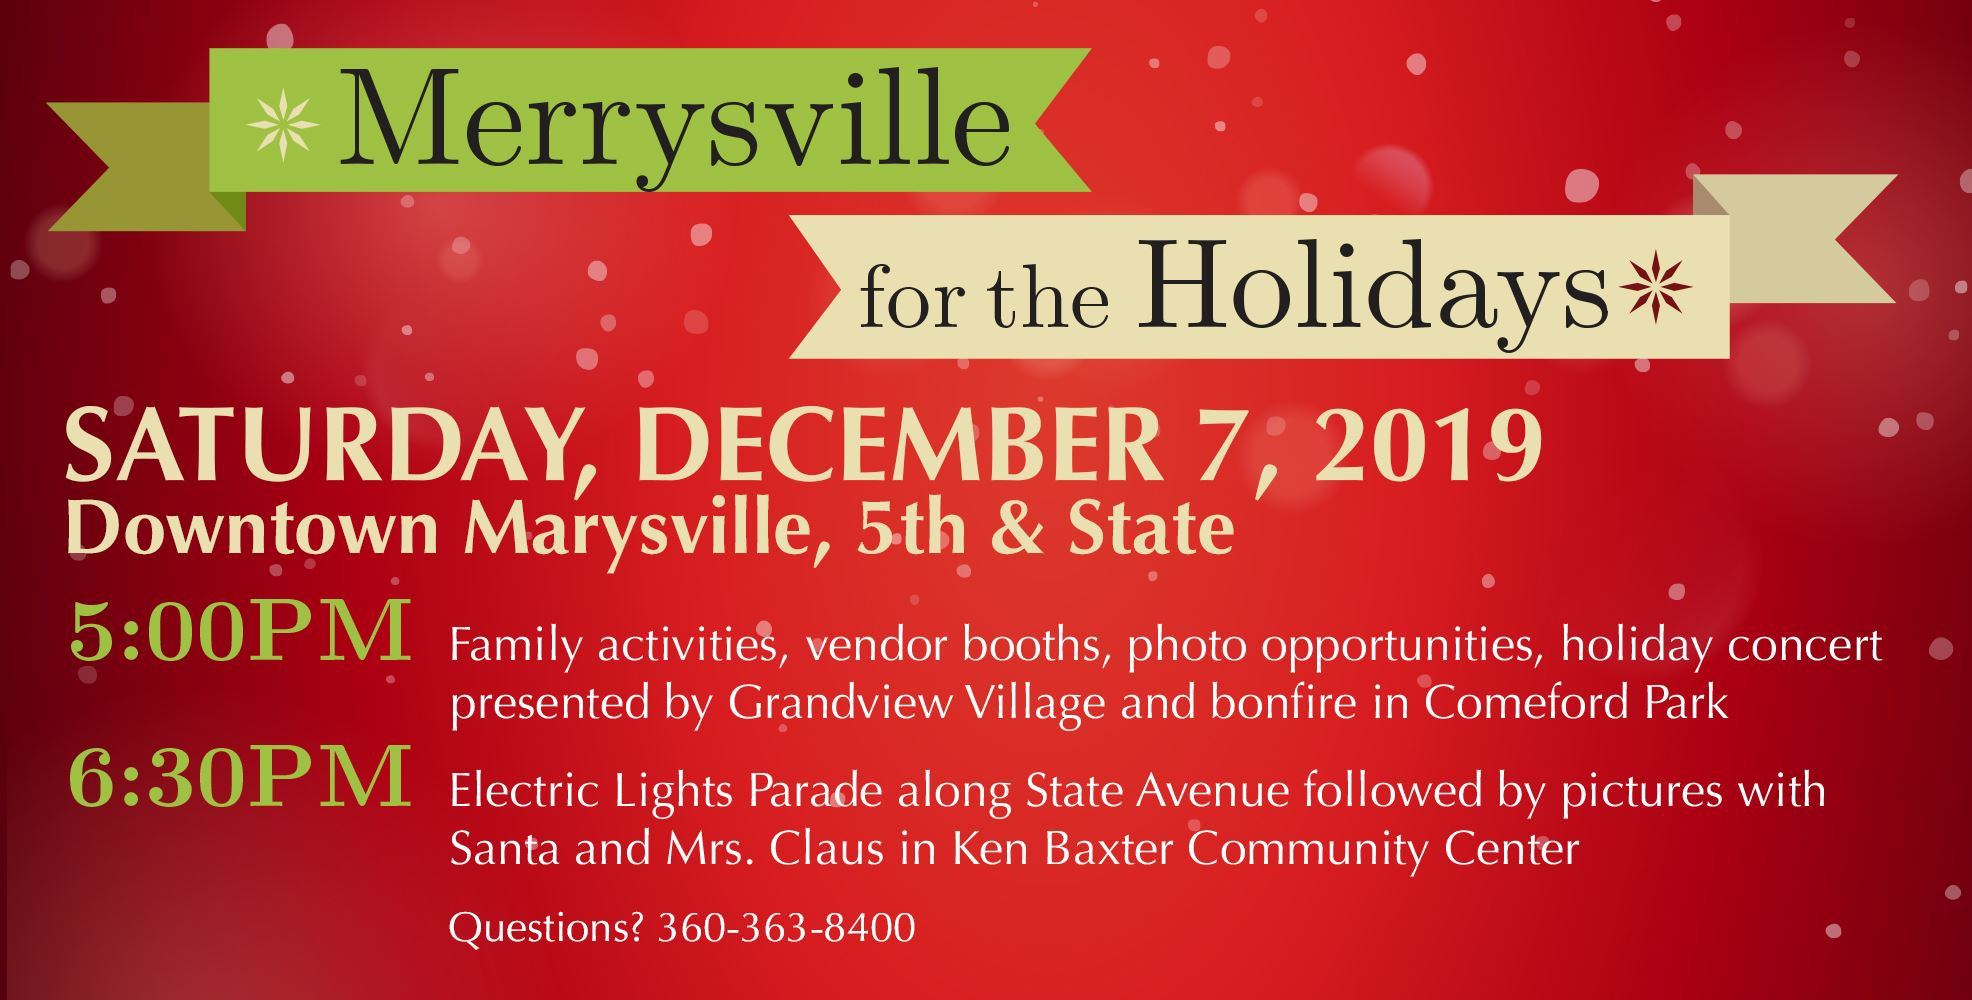 Merrysville for the Holidays - December 7, 2019